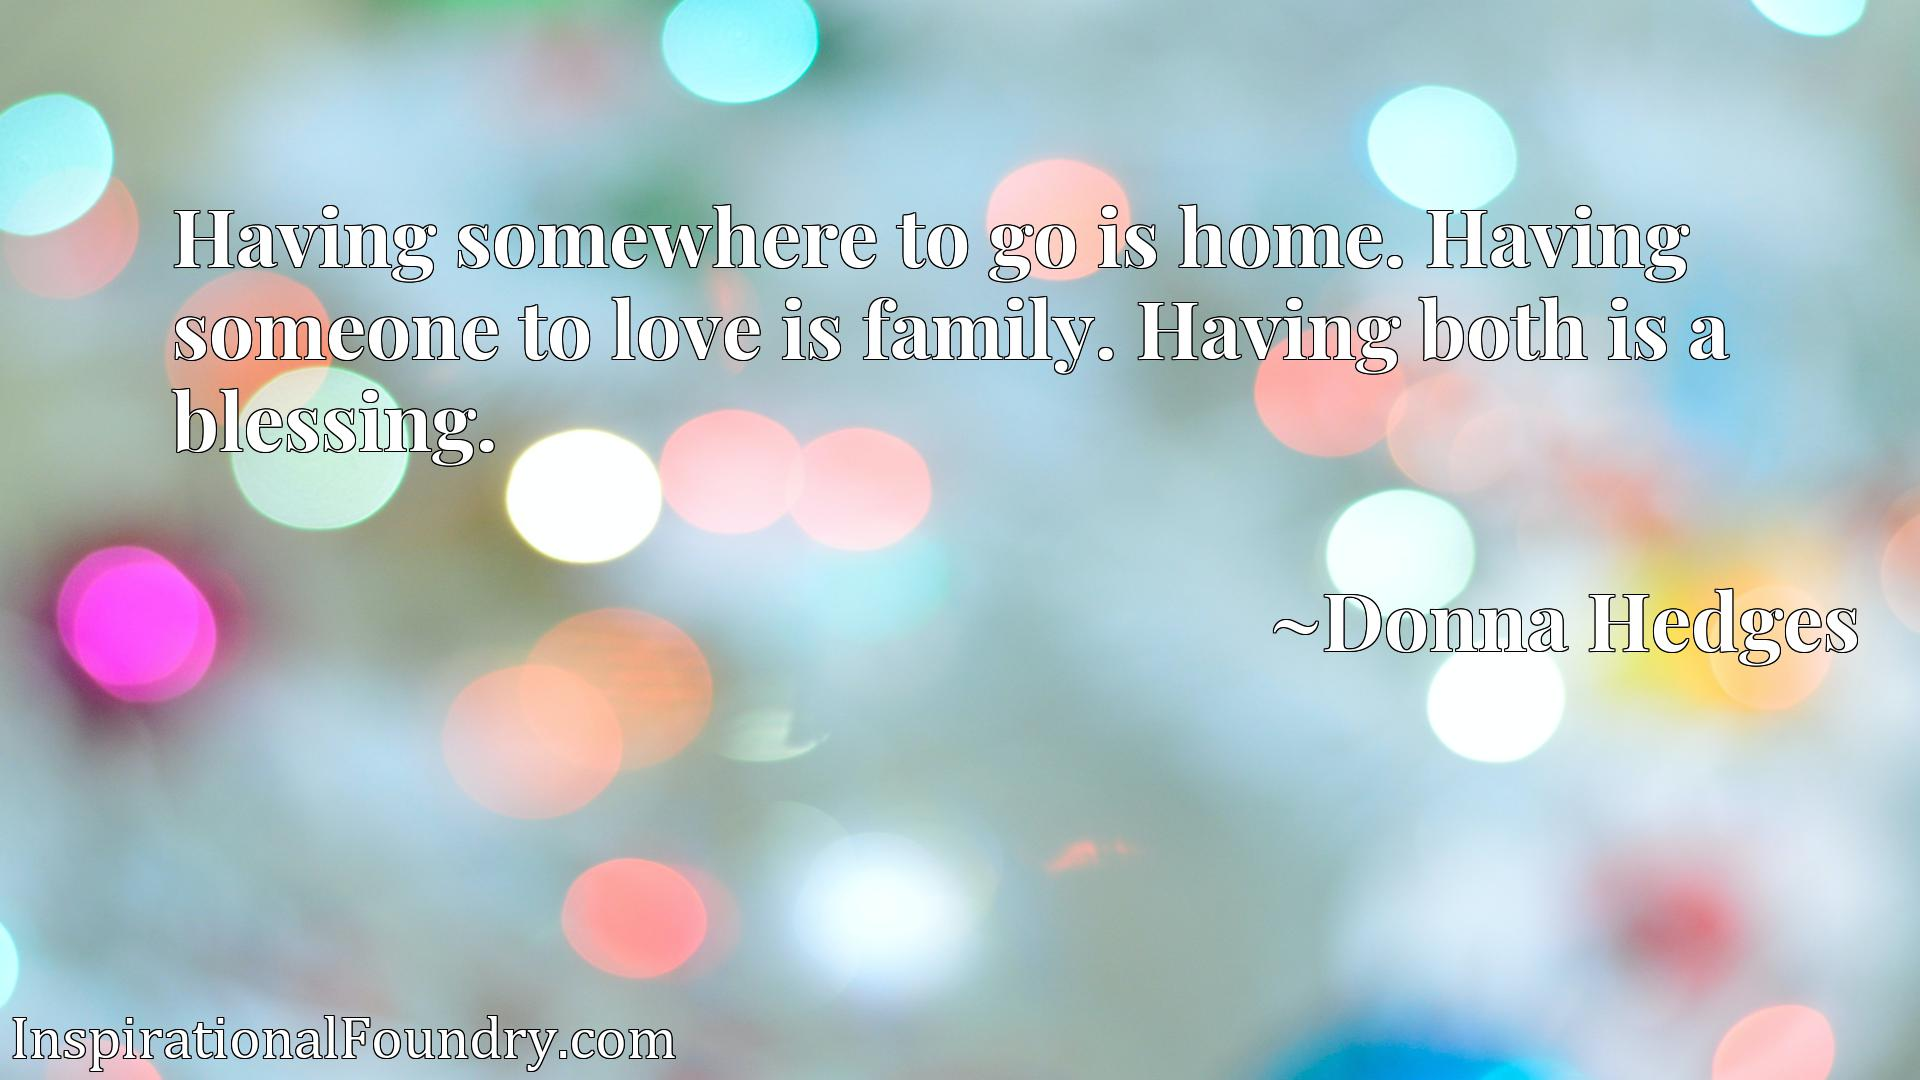 Having somewhere to go is home. Having someone to love is family. Having both is a blessing.